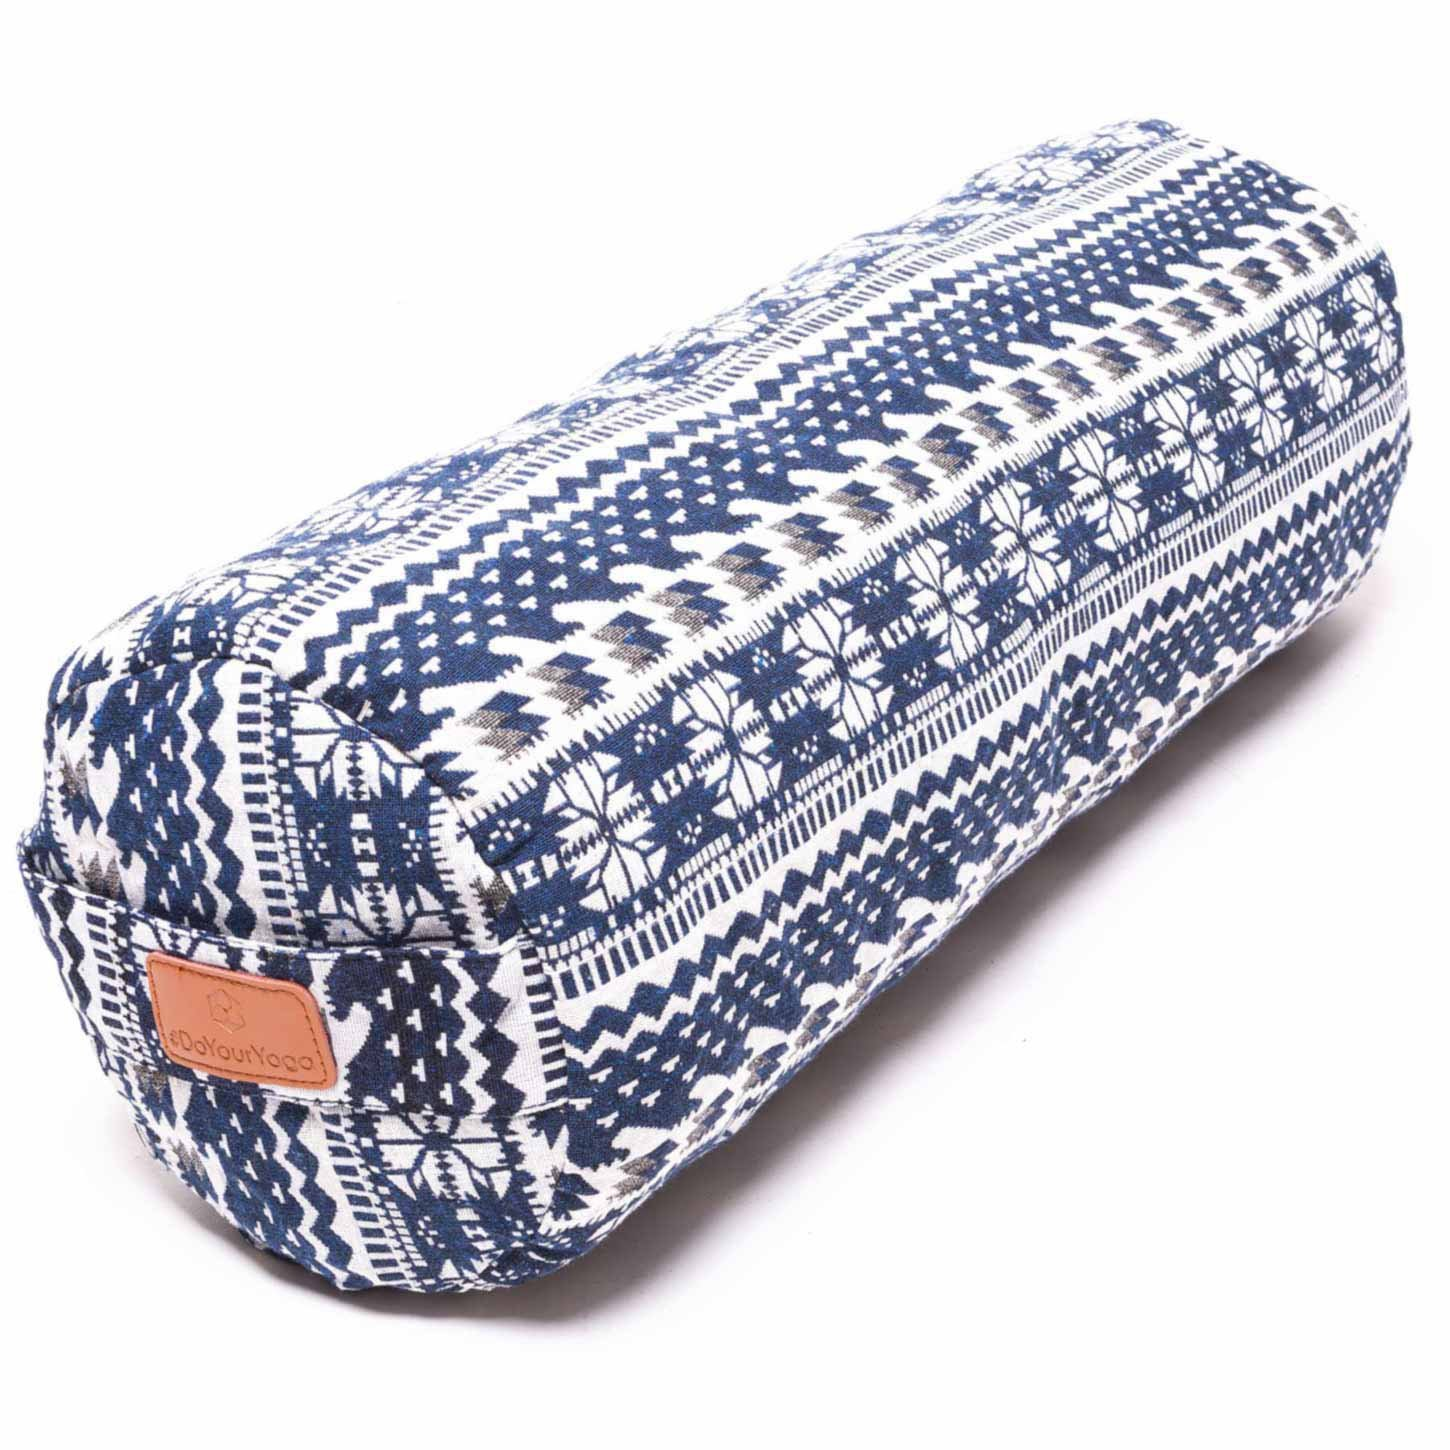 Yoga Bolster Pattern Blog Dandk